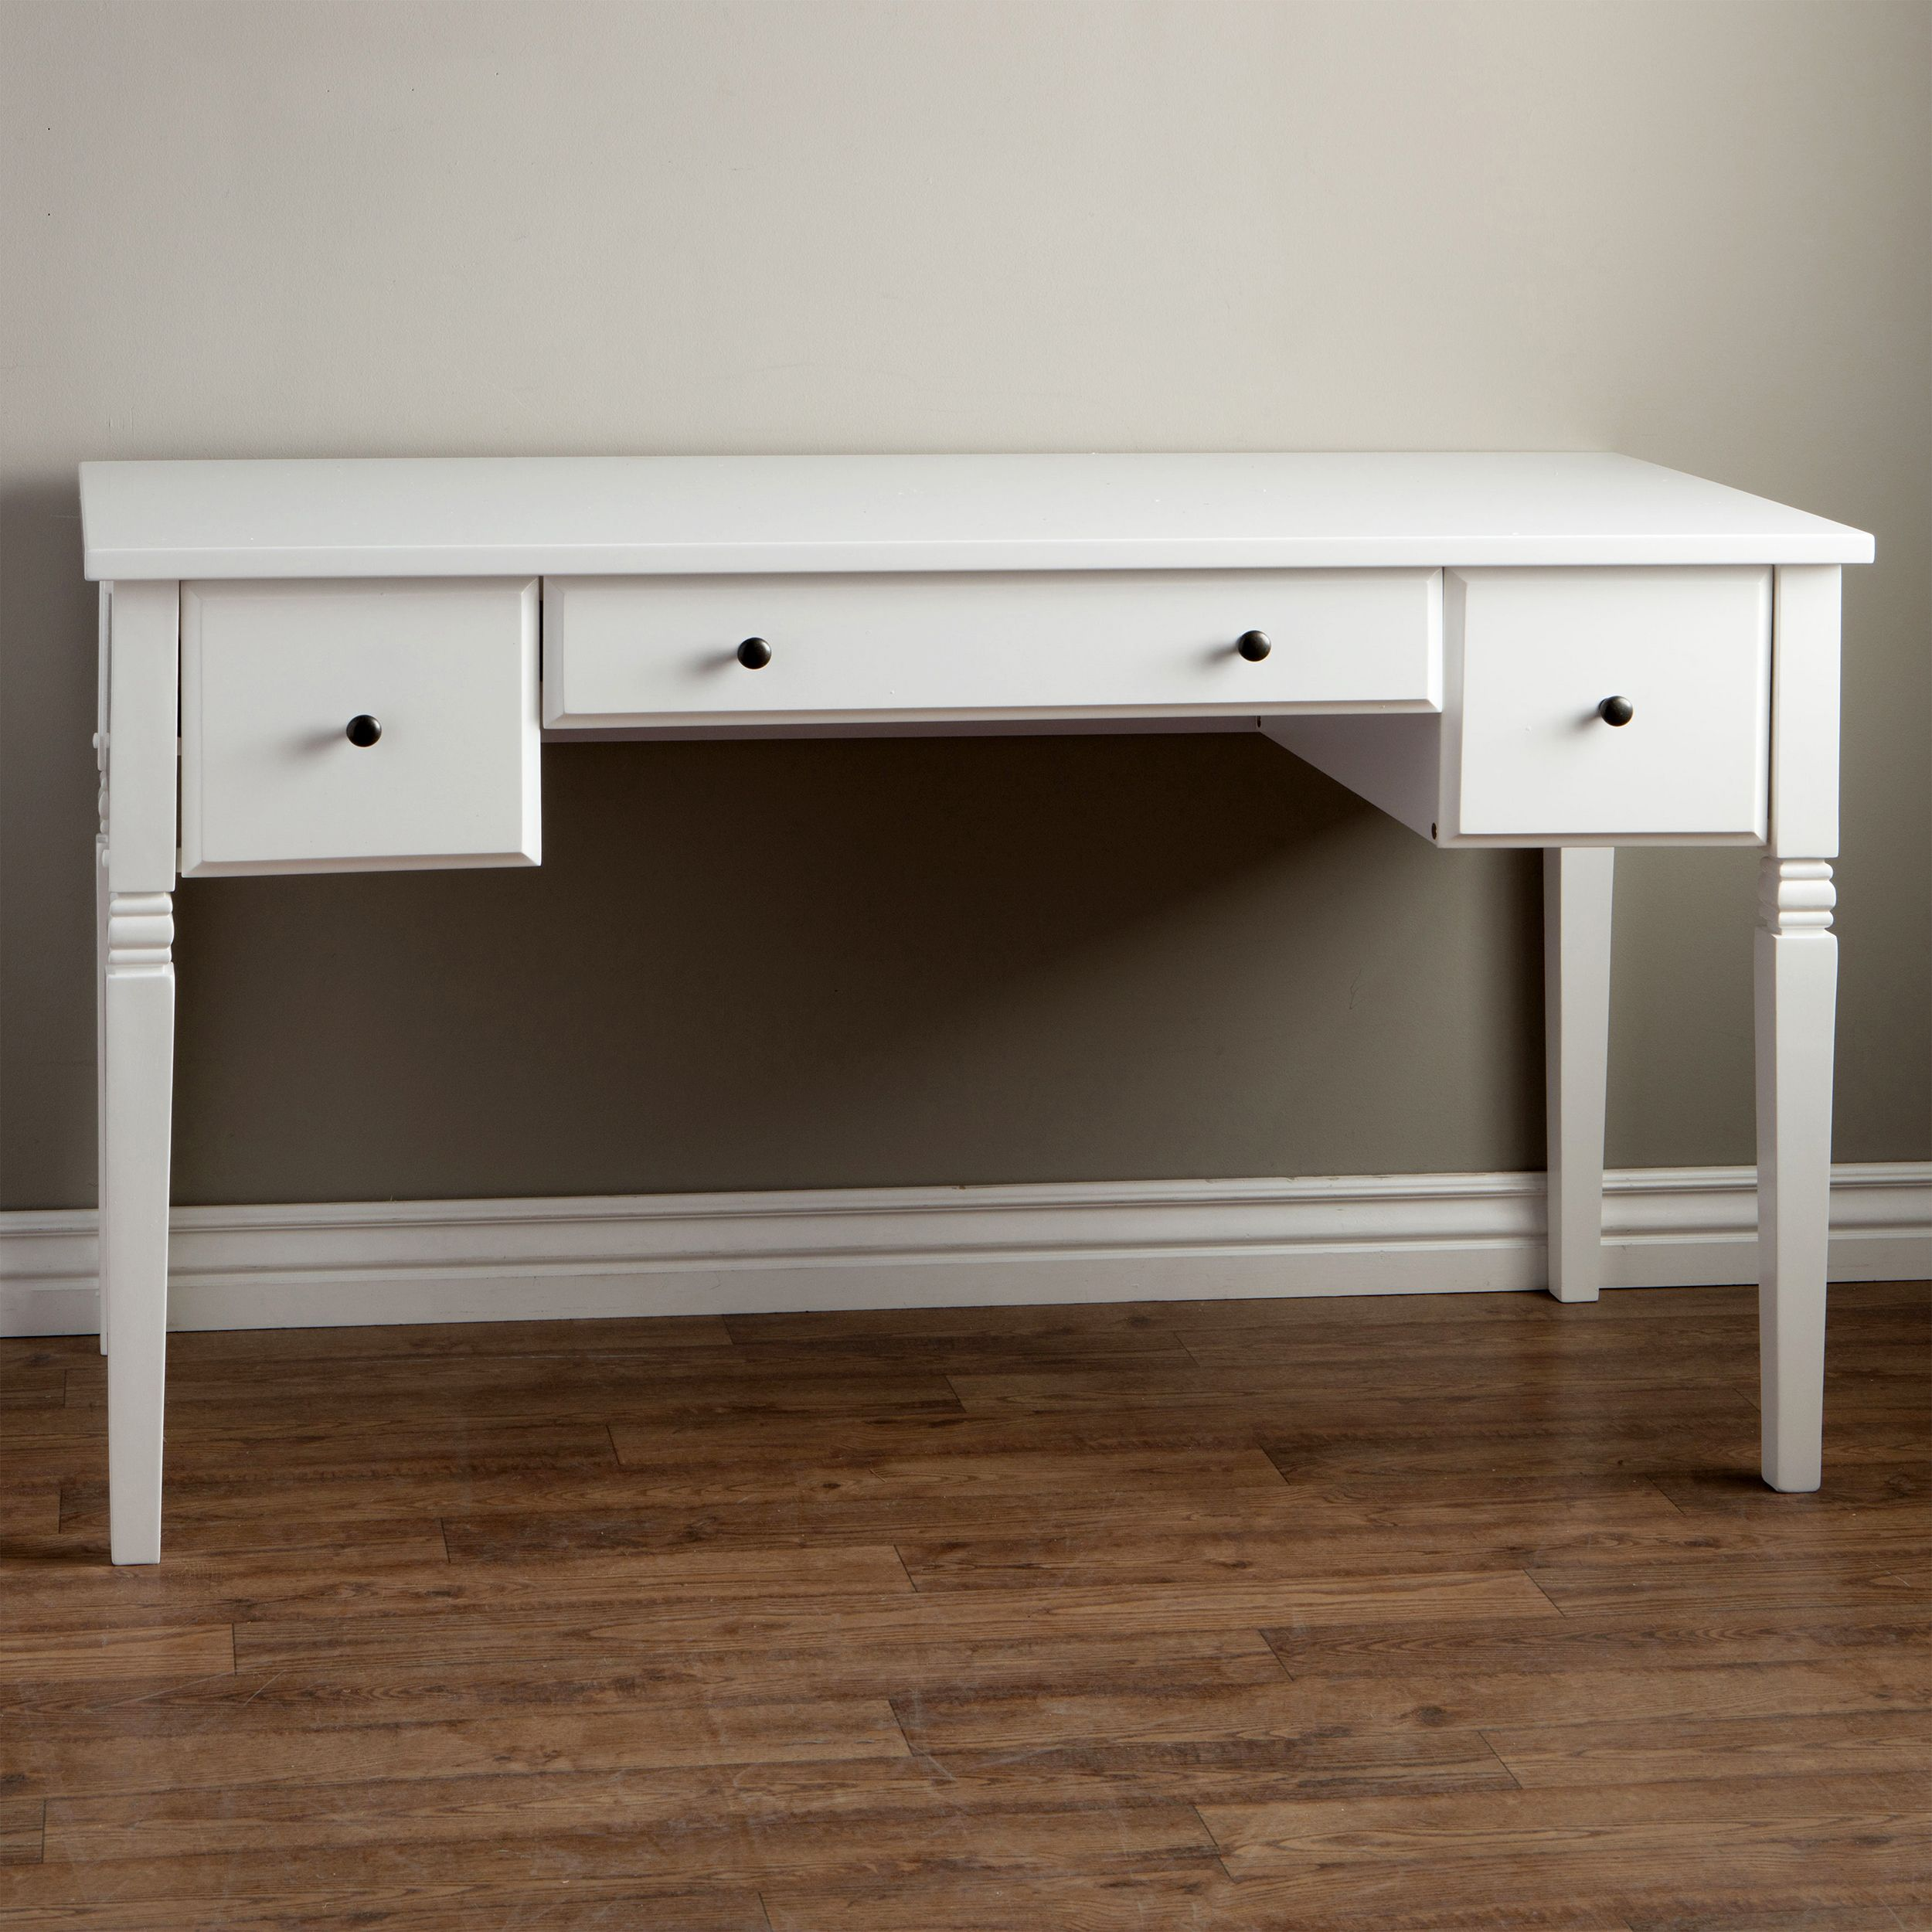 Online Shopping Bedding Furniture Electronics Jewelry Clothing More White Office Furniture Drawers Desk